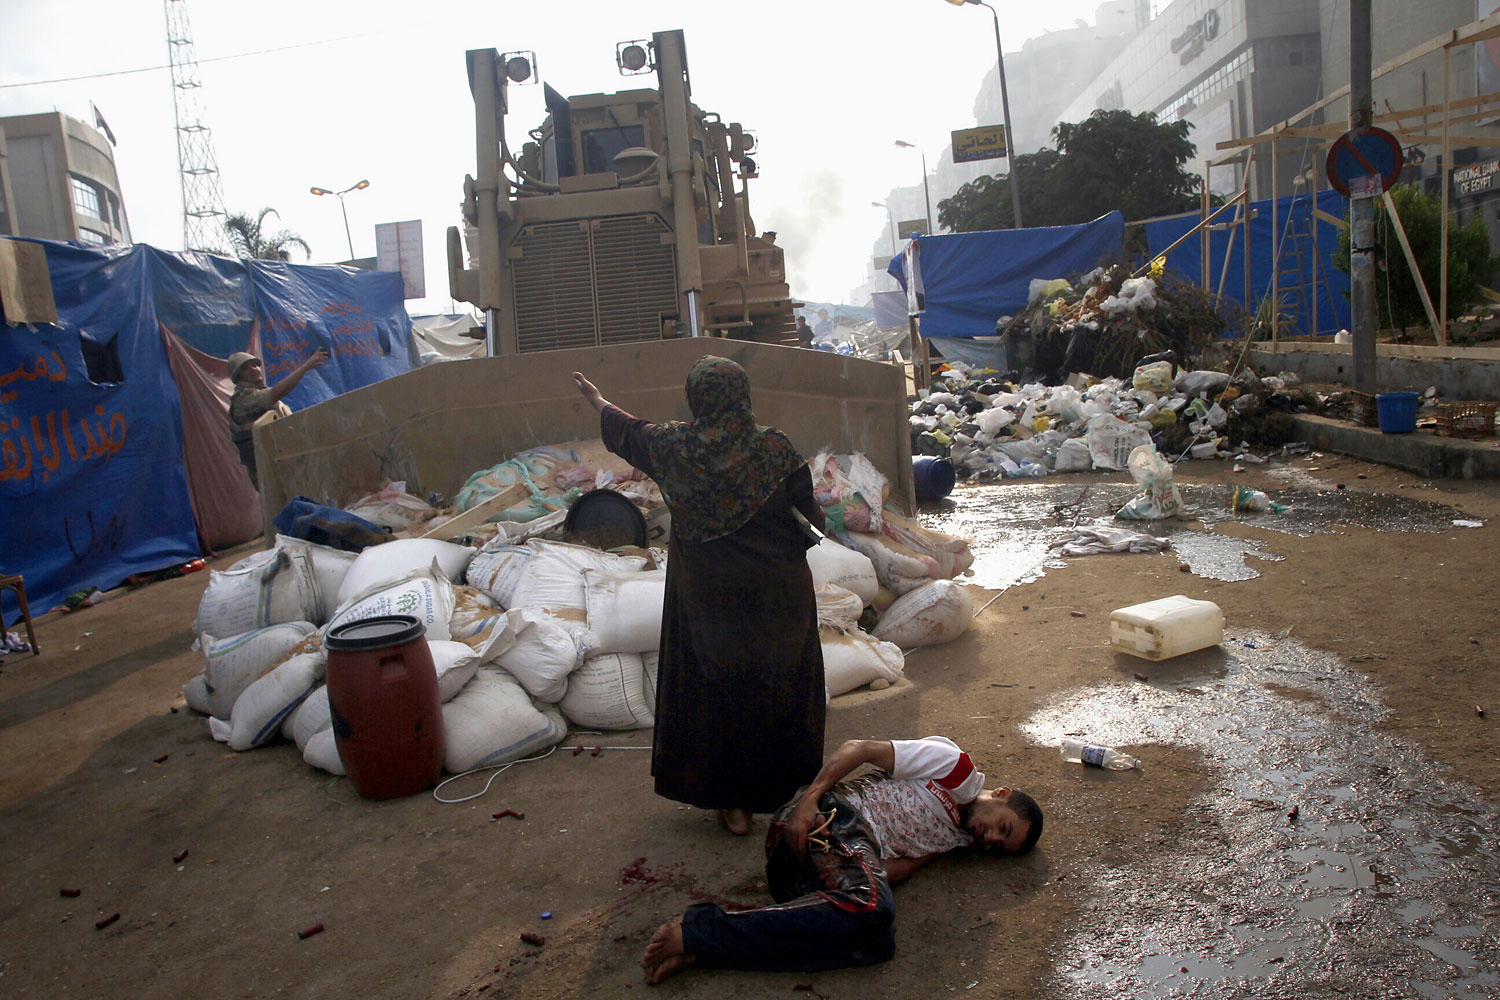 An Egyptian woman tries to stop a military bulldozer from hurting a wounded youth during clashes that broke out as Egyptian security forces moved in to disperse supporters of Egypt's deposed president Mohamed Morsi in a huge protest camp near Rabaa al-Adawiya mosque in eastern Cairo on Aug. 14, 2013.